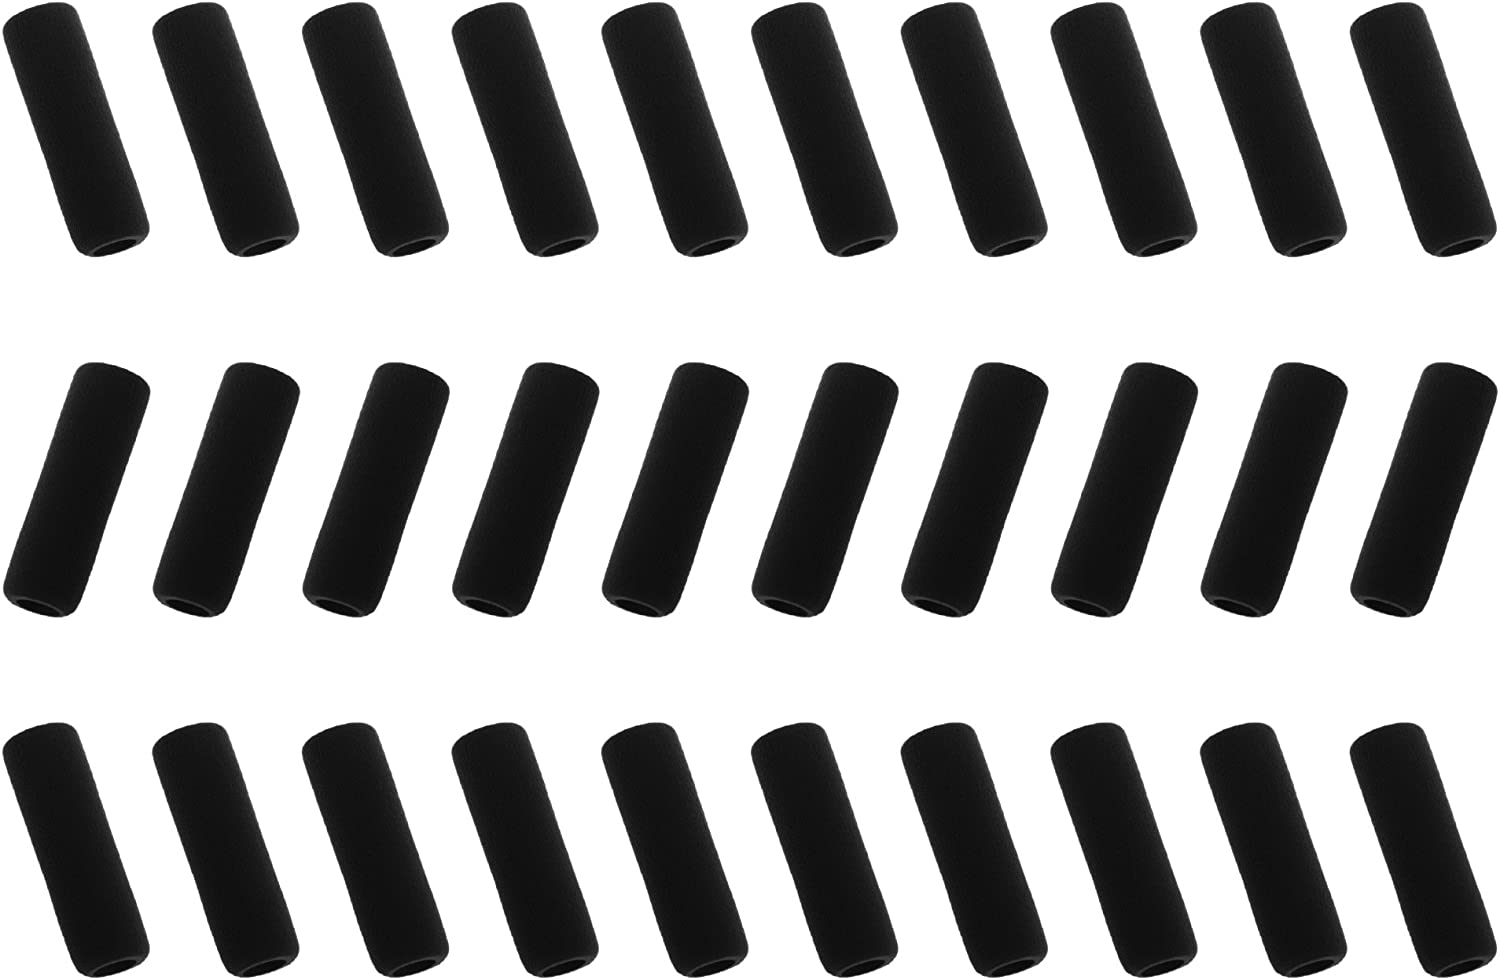 BCP pack of 30 Black Color soft foam 1.5-inch Pencil Grips Pencil Cover (Black)